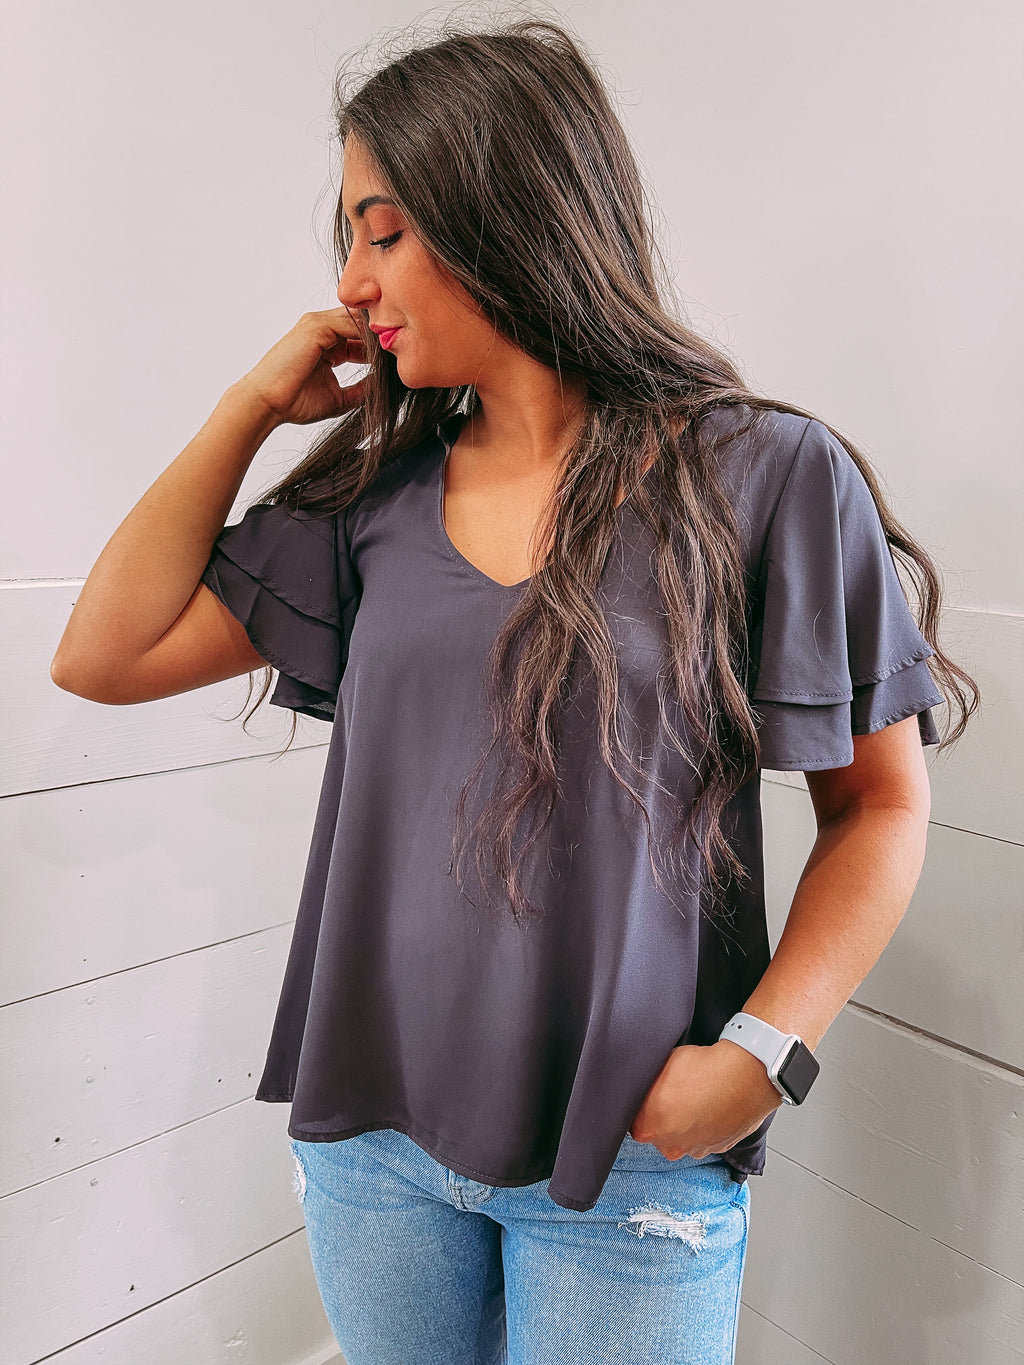 Away With Me Flare Top - grey